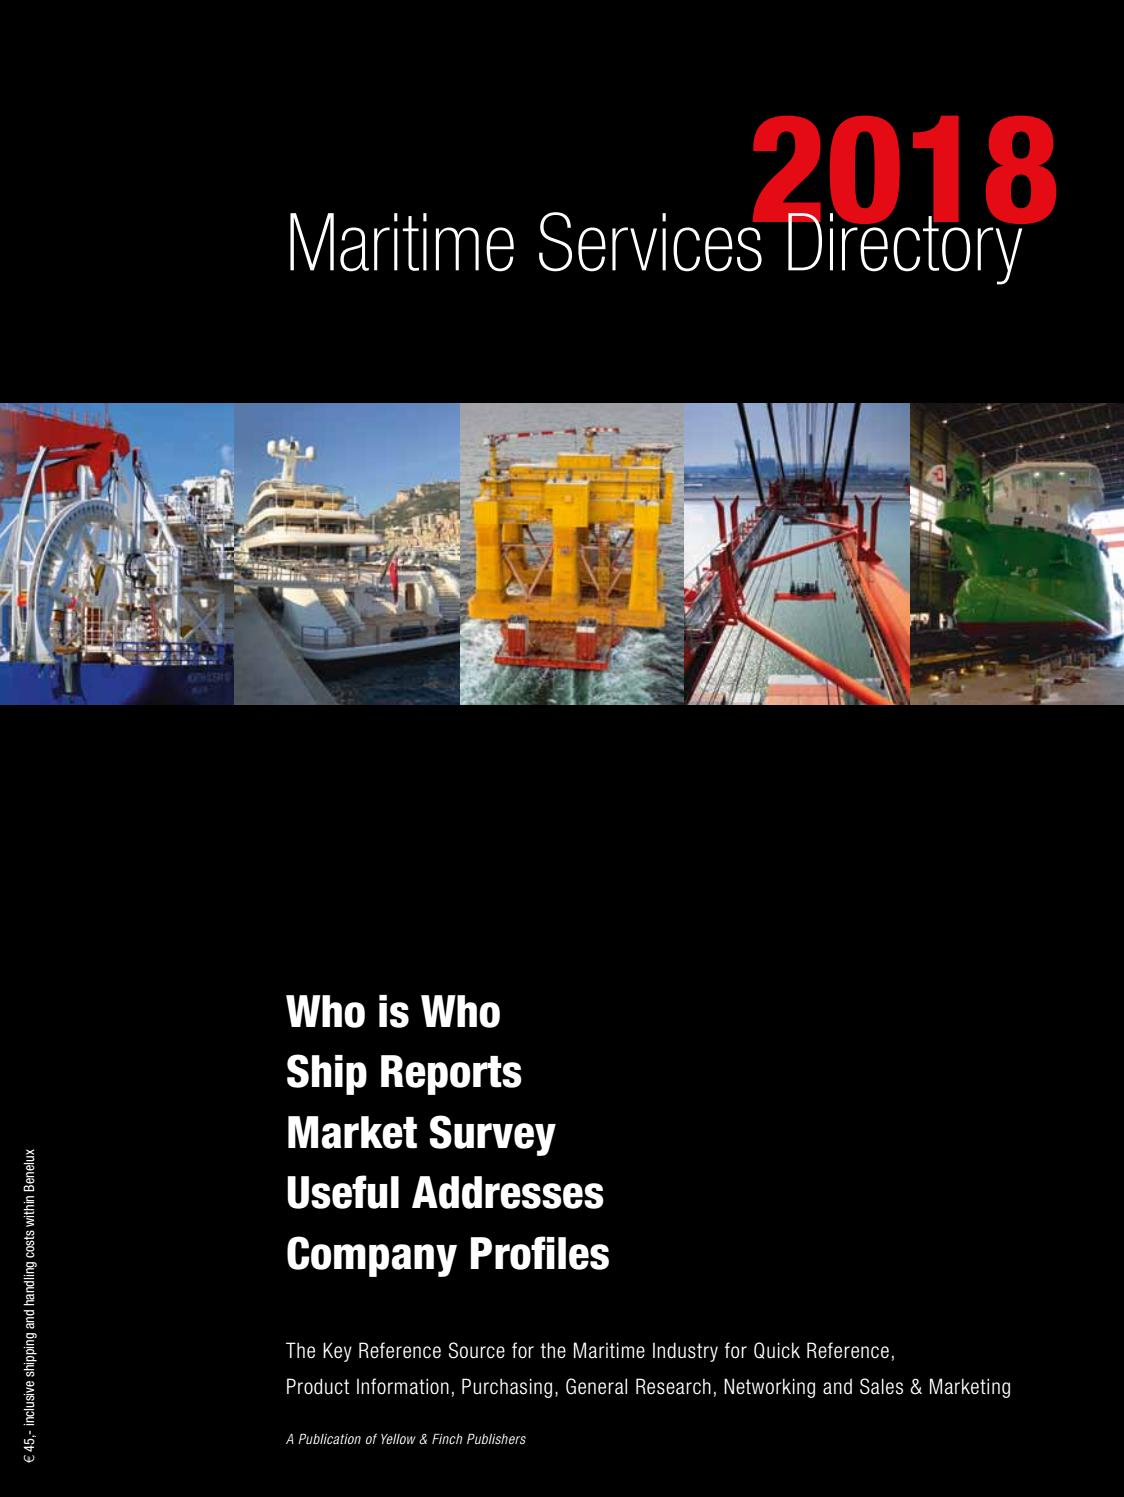 Maritime Services Directory 2018 By Yellow Finch Publishers Issuu How Solar Energy Works Diagram Apps Directories